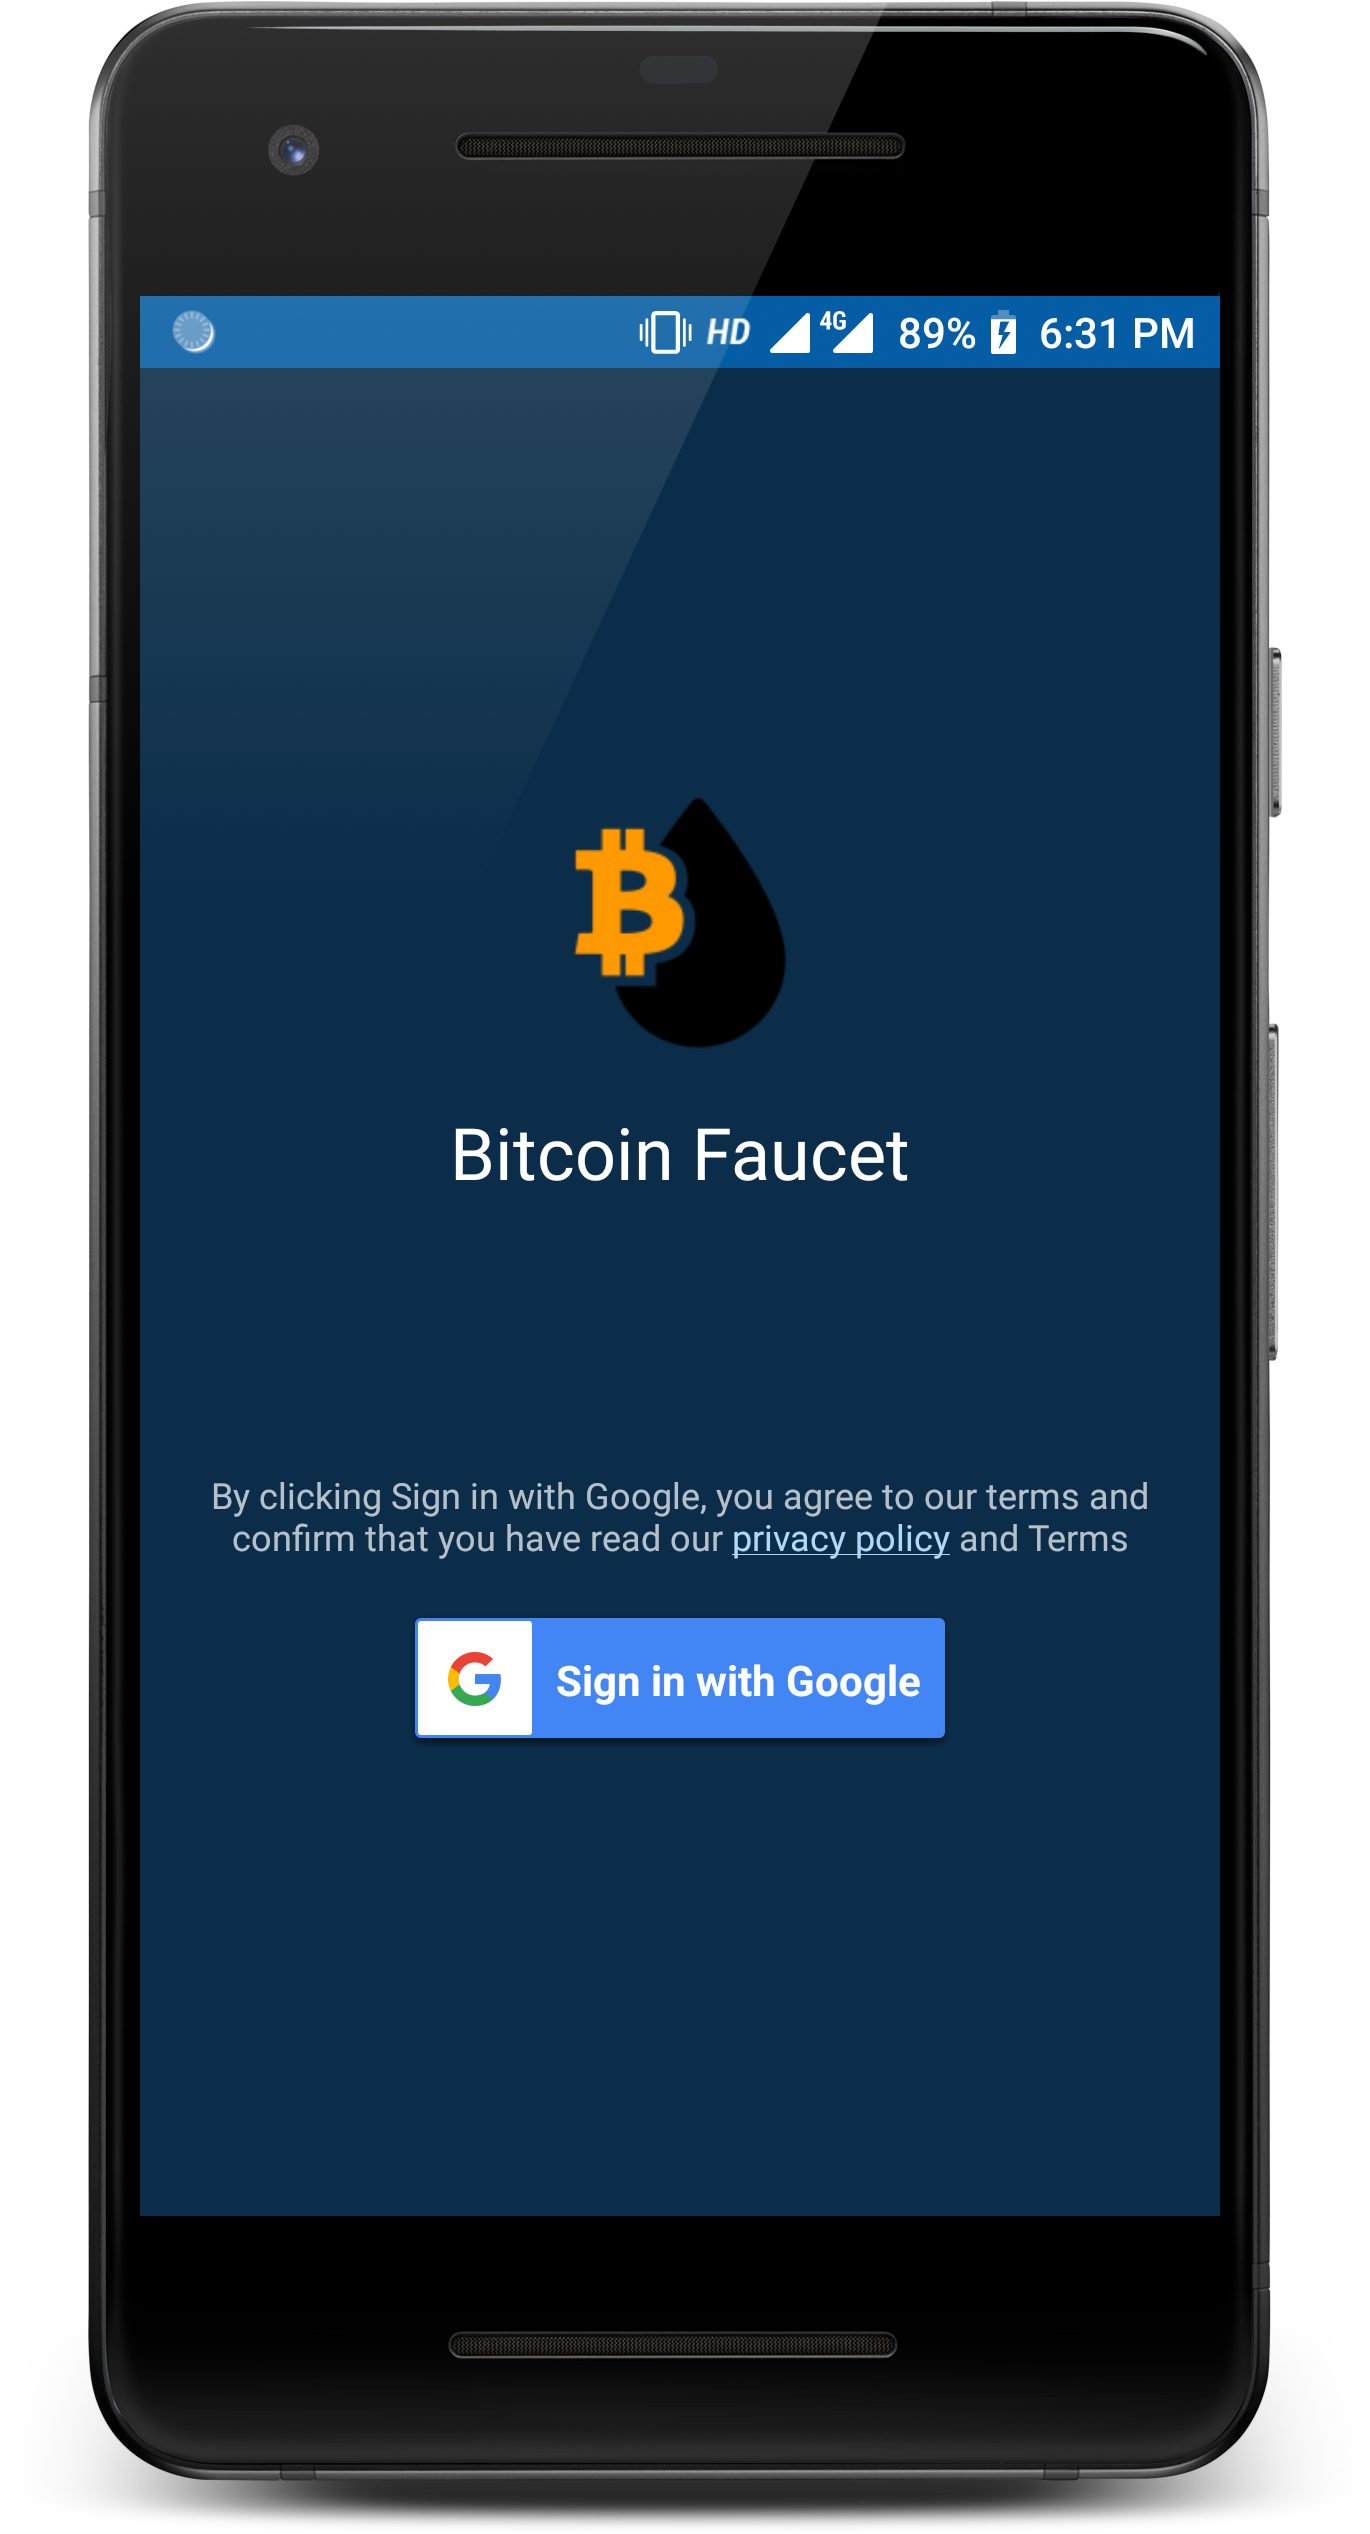 Bitcoin Faucet Full Android Application   Top Traffic Driving App    Firebase & Admob